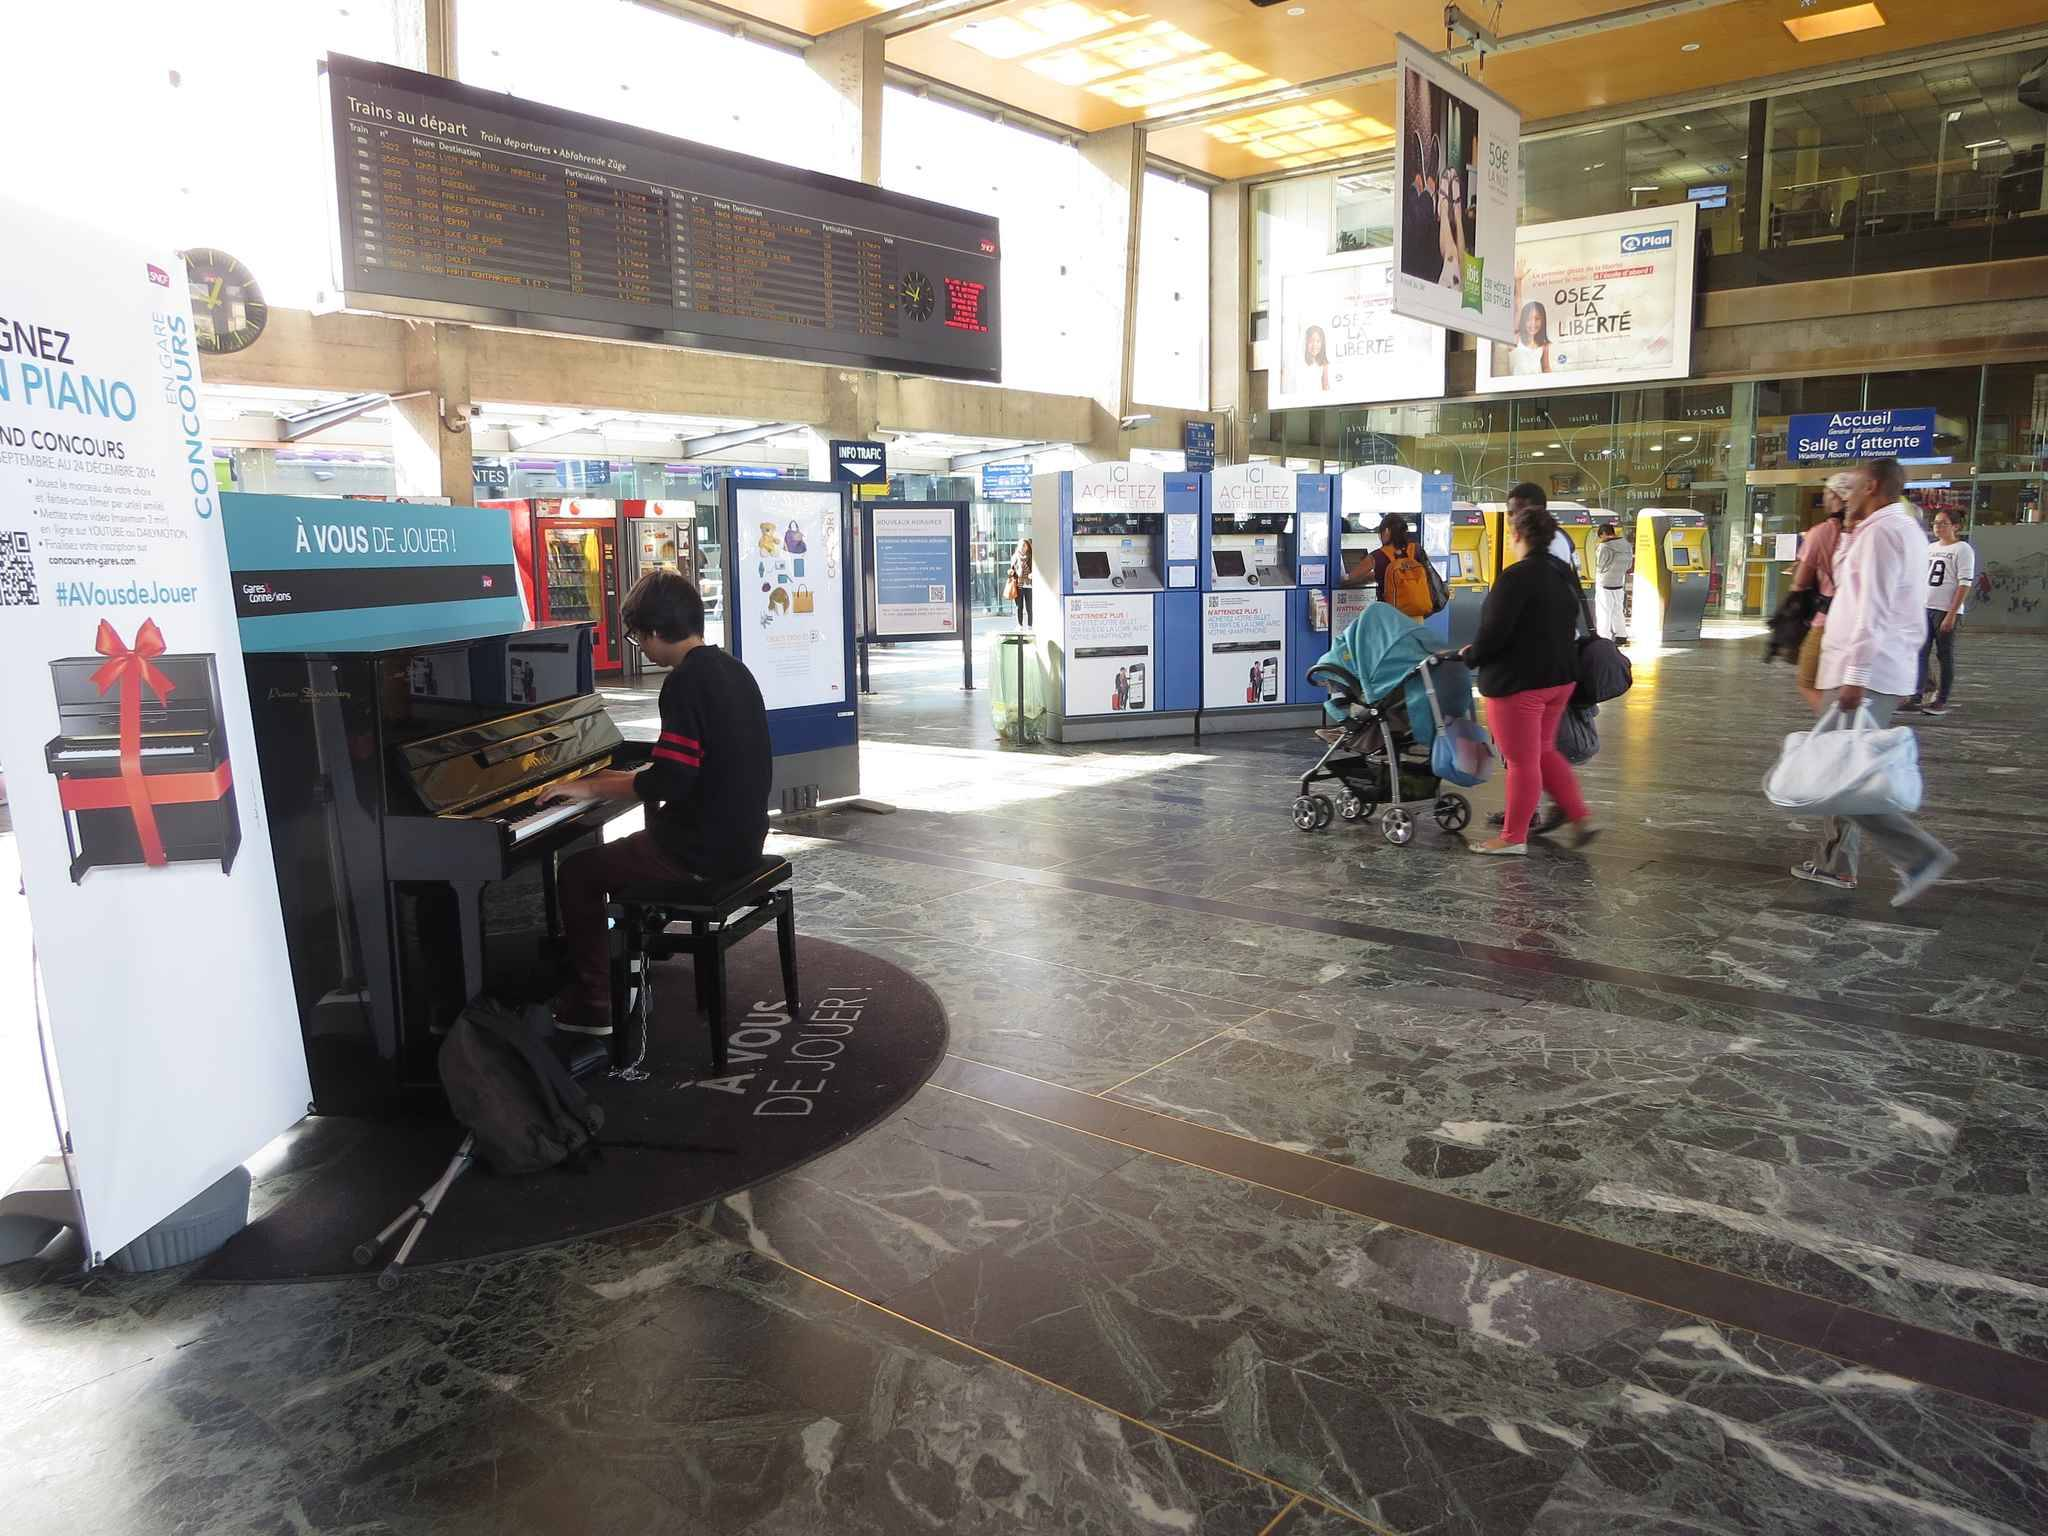 video nantes d couvrez les trois finalistes nantais du concours de piano en gare. Black Bedroom Furniture Sets. Home Design Ideas